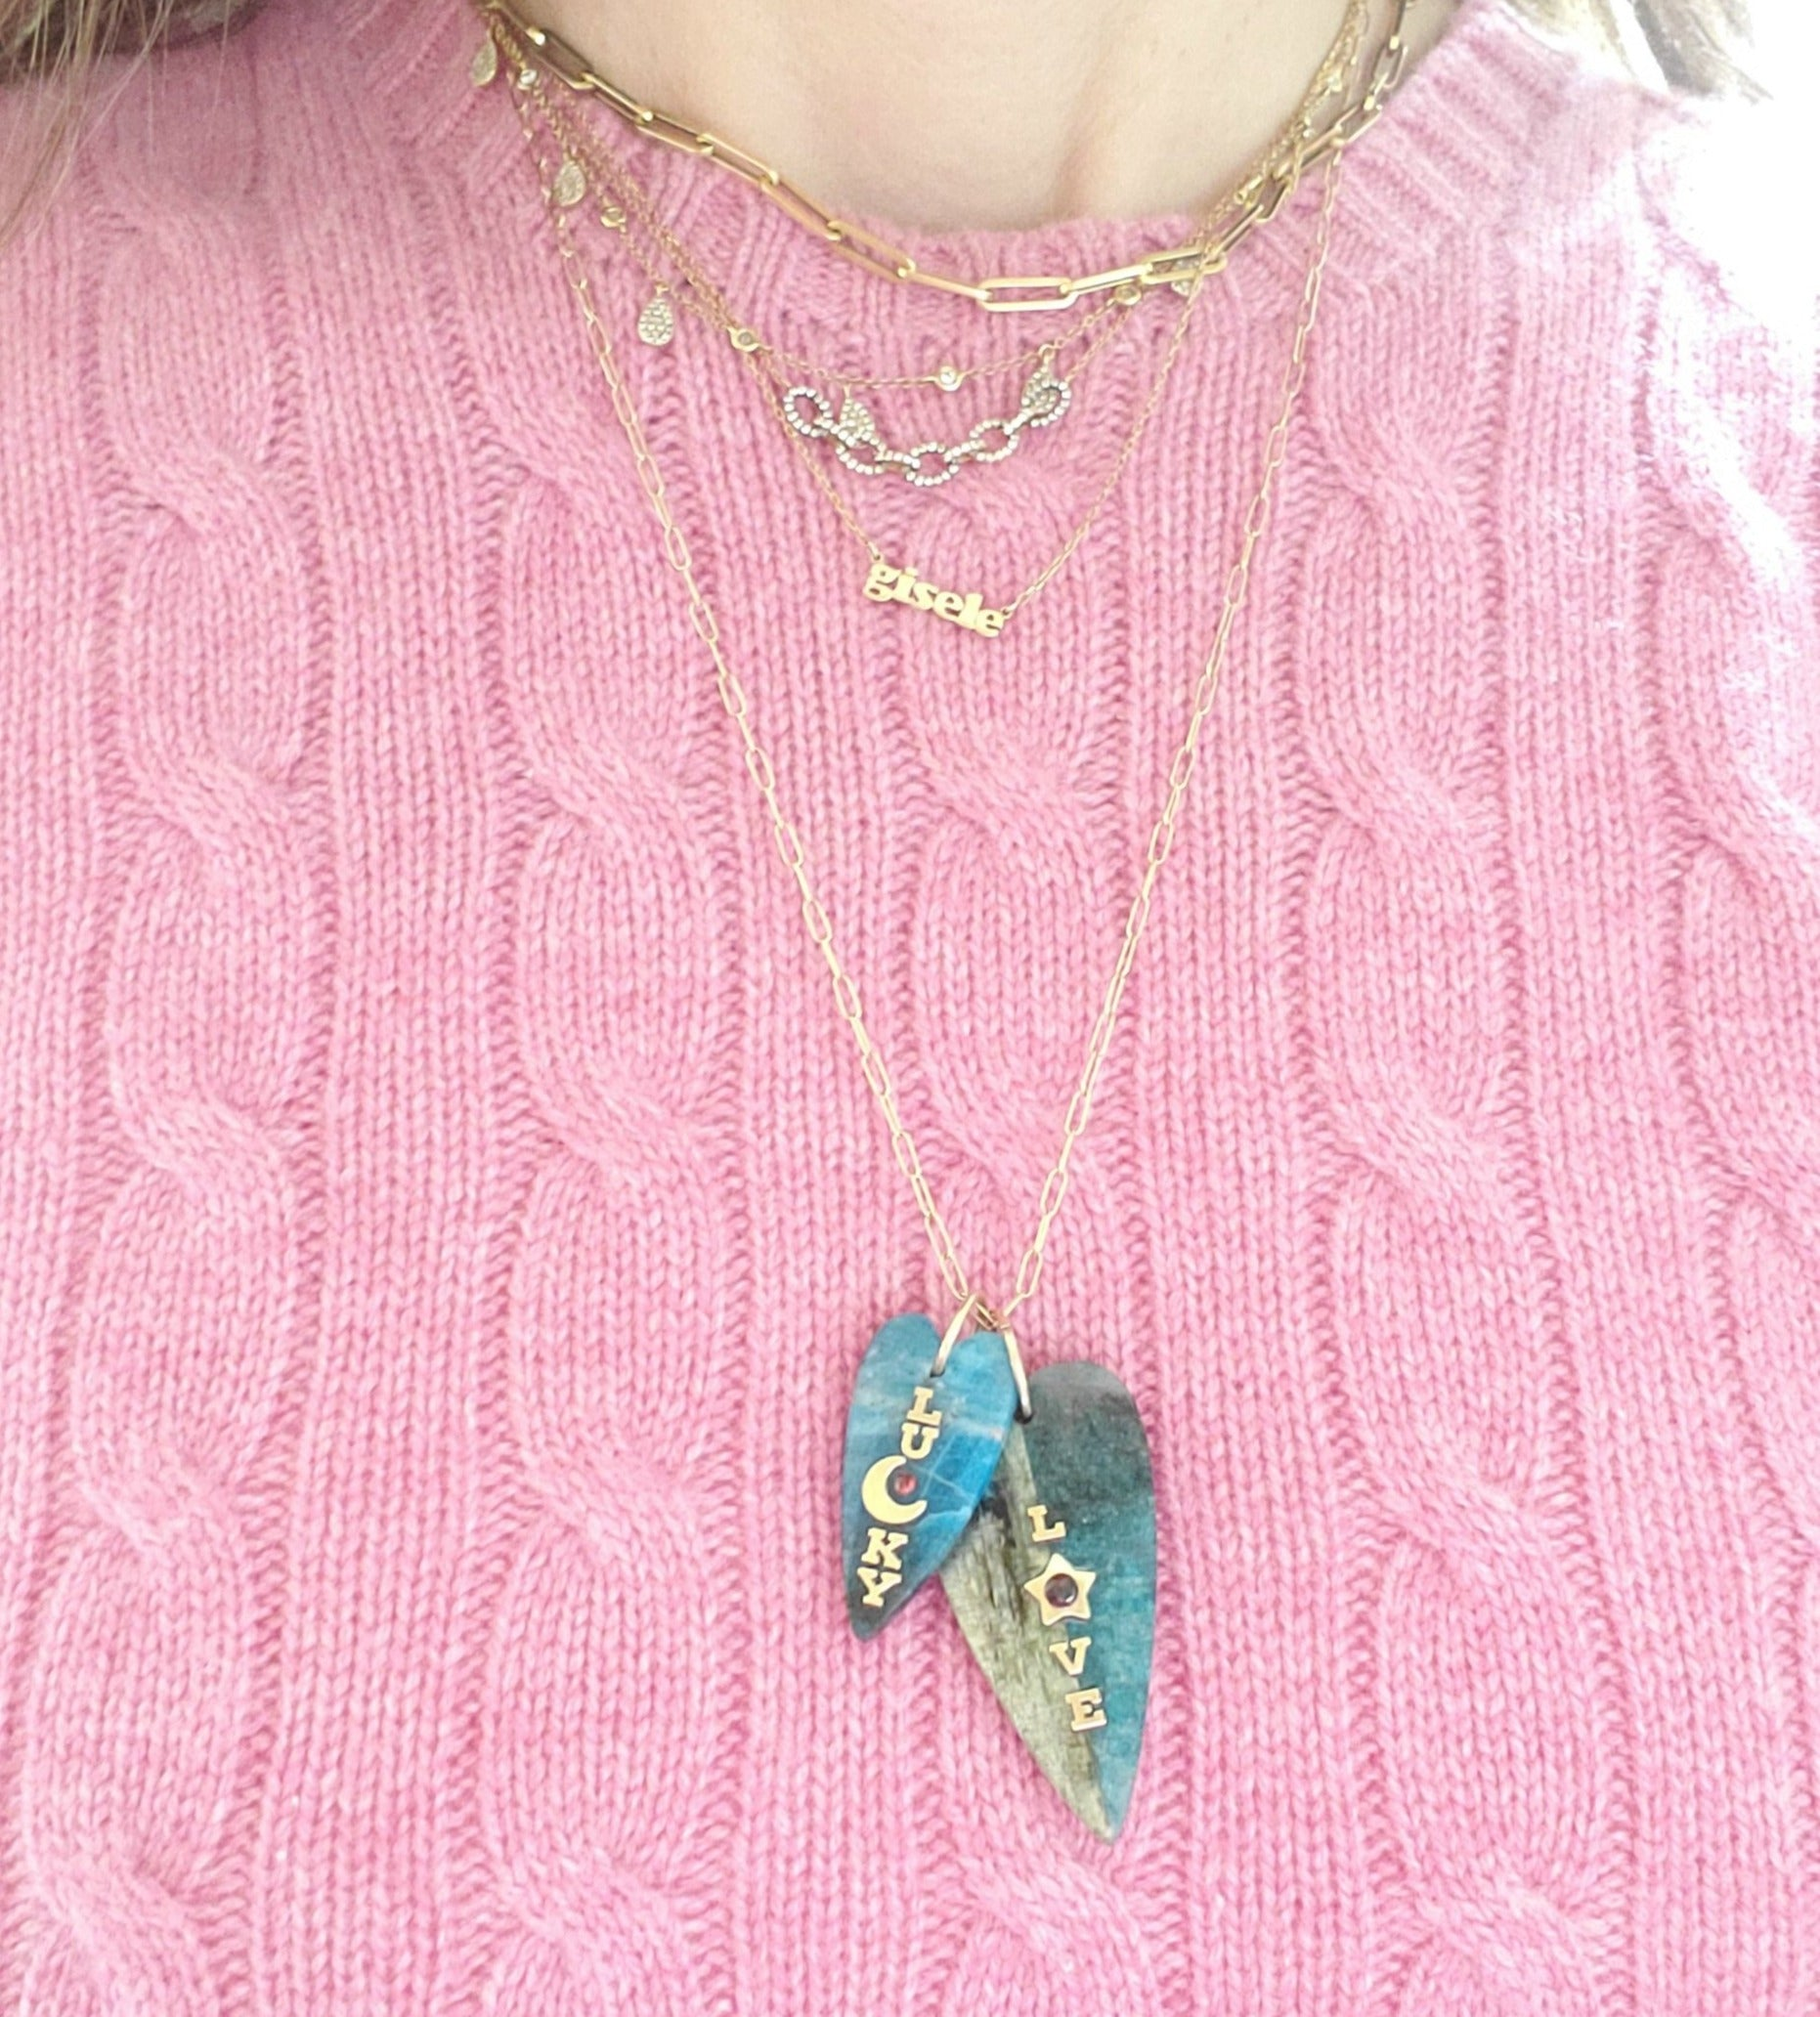 L☆VE Kyanite Heart (large)